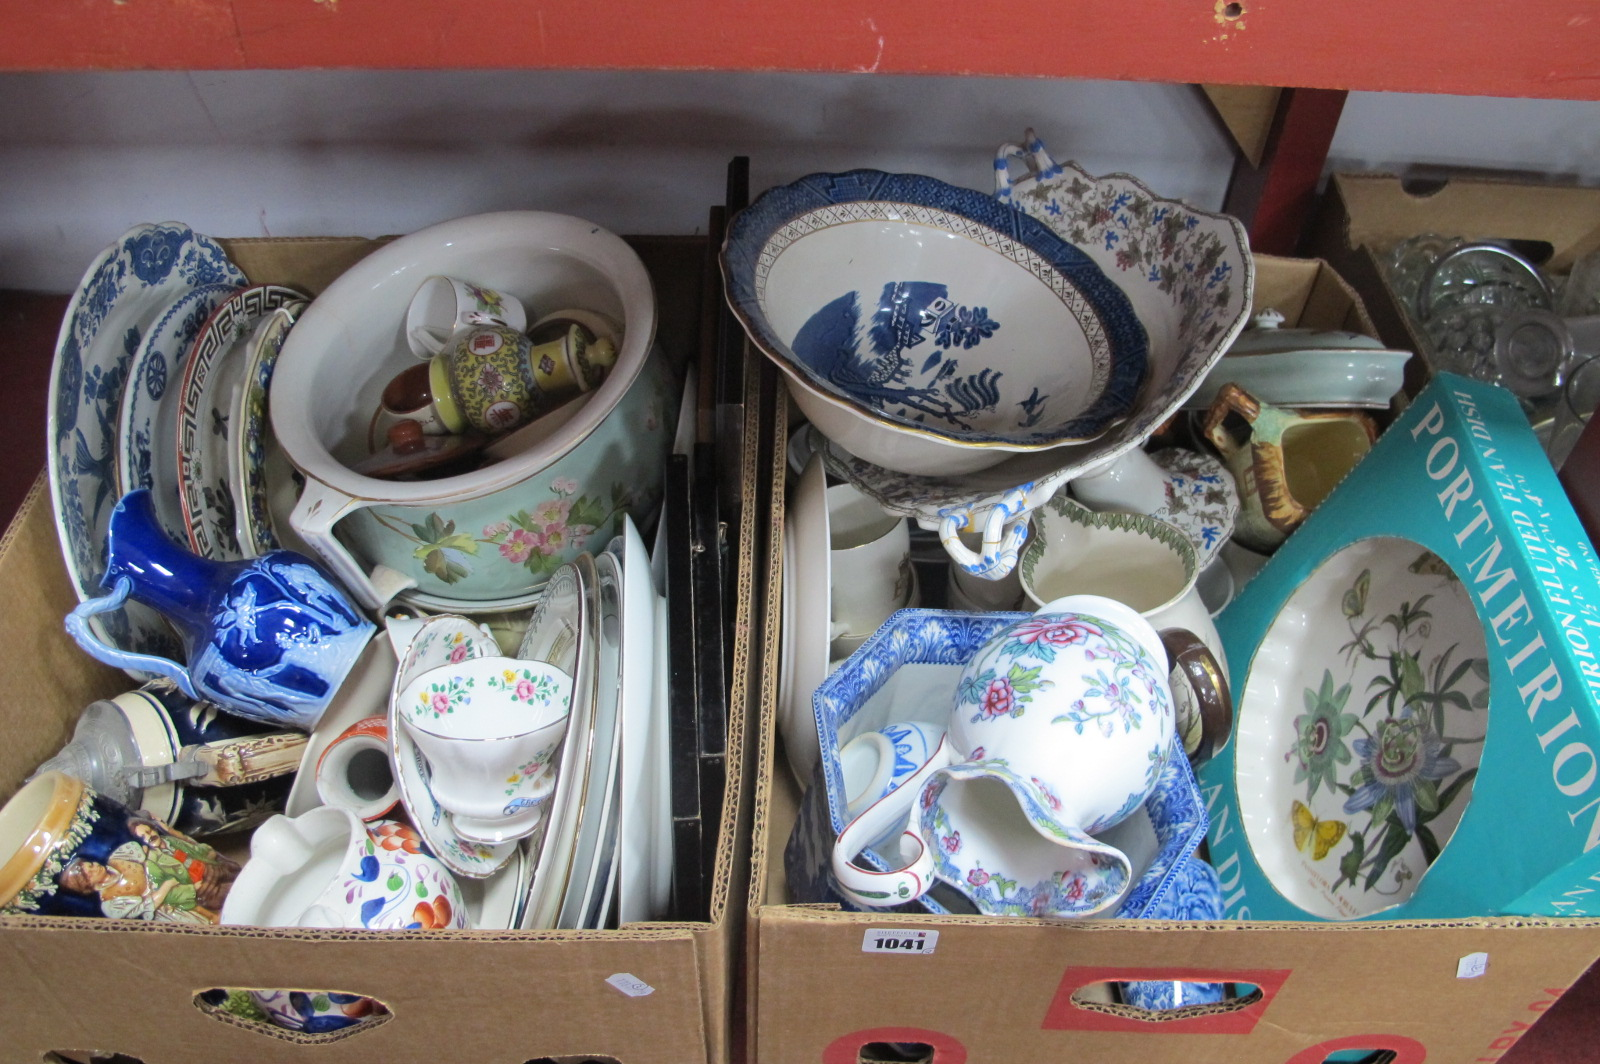 Chamber Pots, Portmeirion flan dish, other ceramics (damages):- Two Boxes.